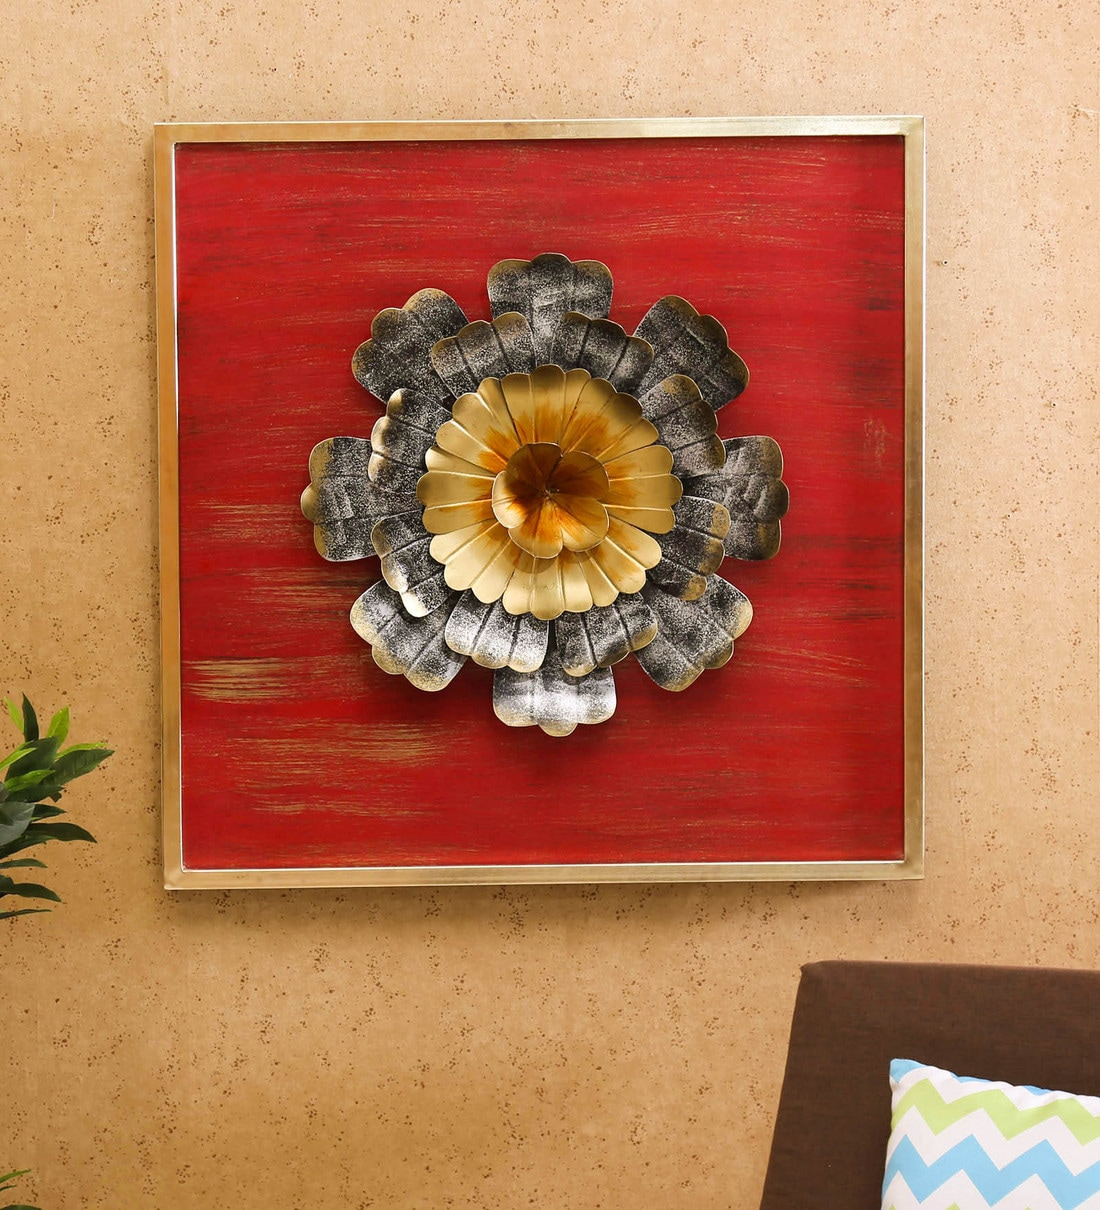 Buy Wrought Iron Marigold Flower In Red Wall Art By Vedas Online Floral Metal Art Metal Wall Art Home Decor Pepperfry Product